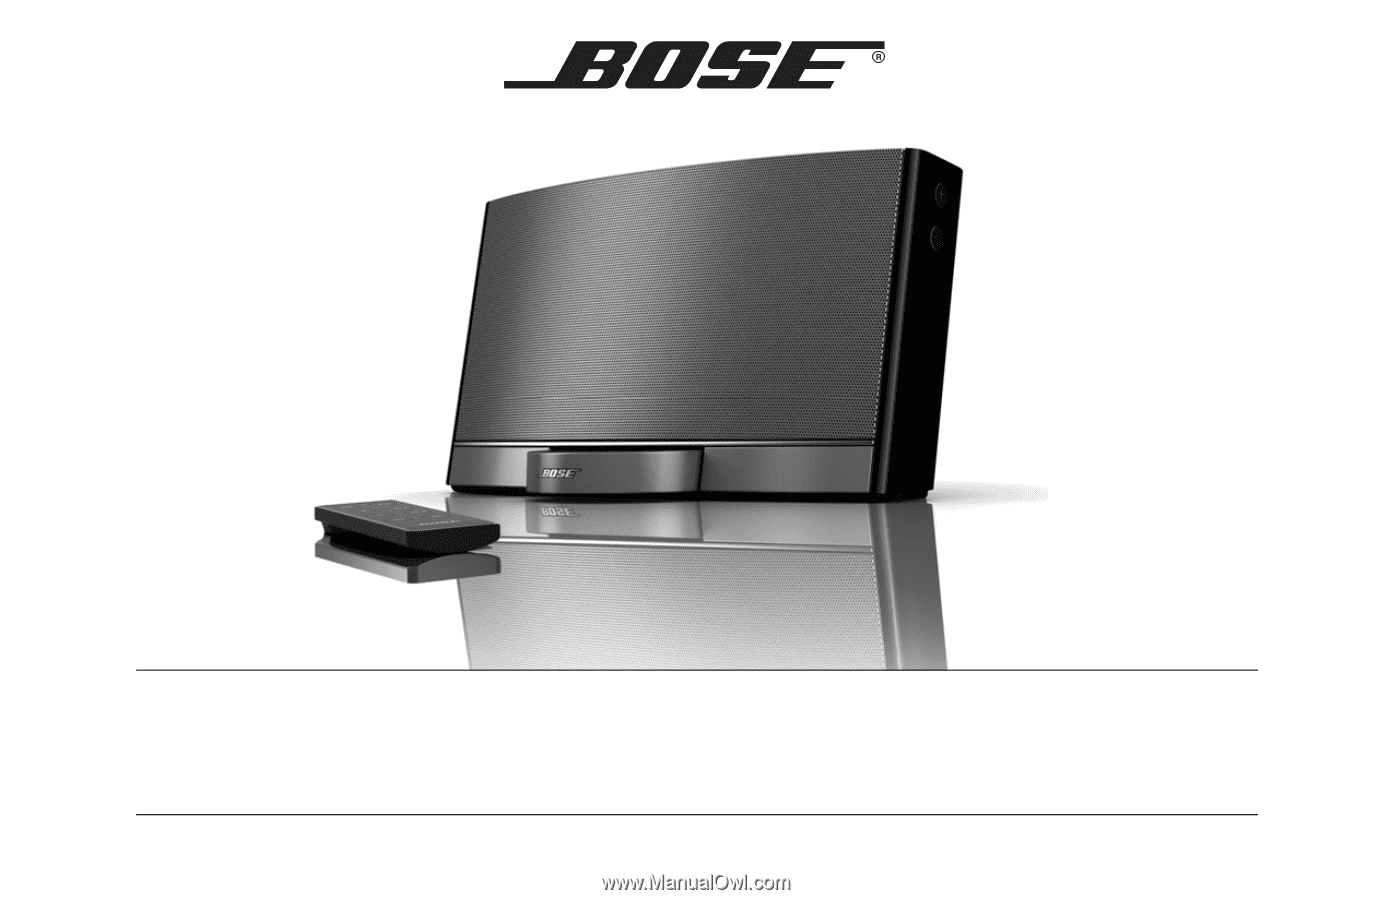 bose sounddock portable owners guide rh manualowl com Bose SoundDock Portable Box Dimensions Bose SoundDock Portable Box Dimensions